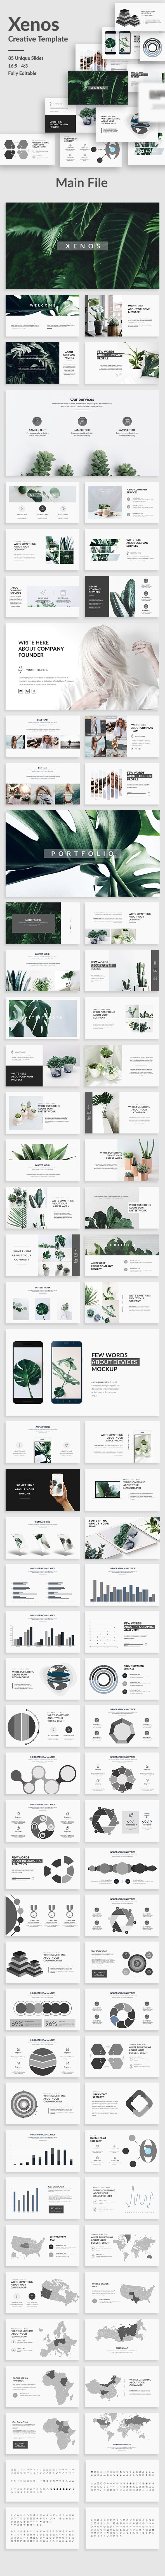 Xenos Creative Powerpoint Template - Creative PowerPoint Templates